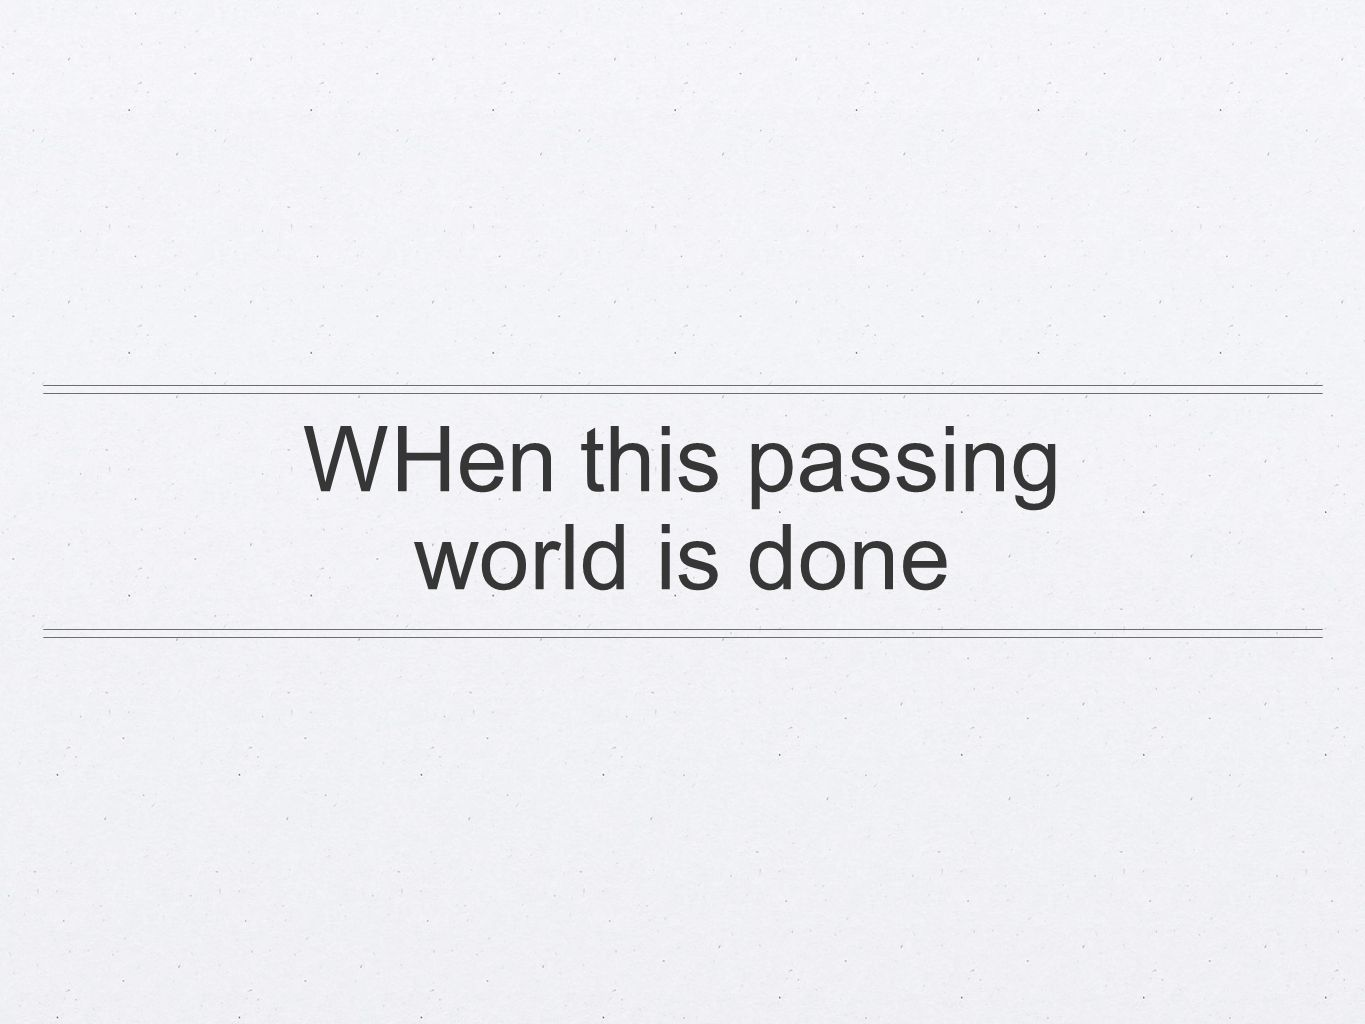 WHen this passing world is done